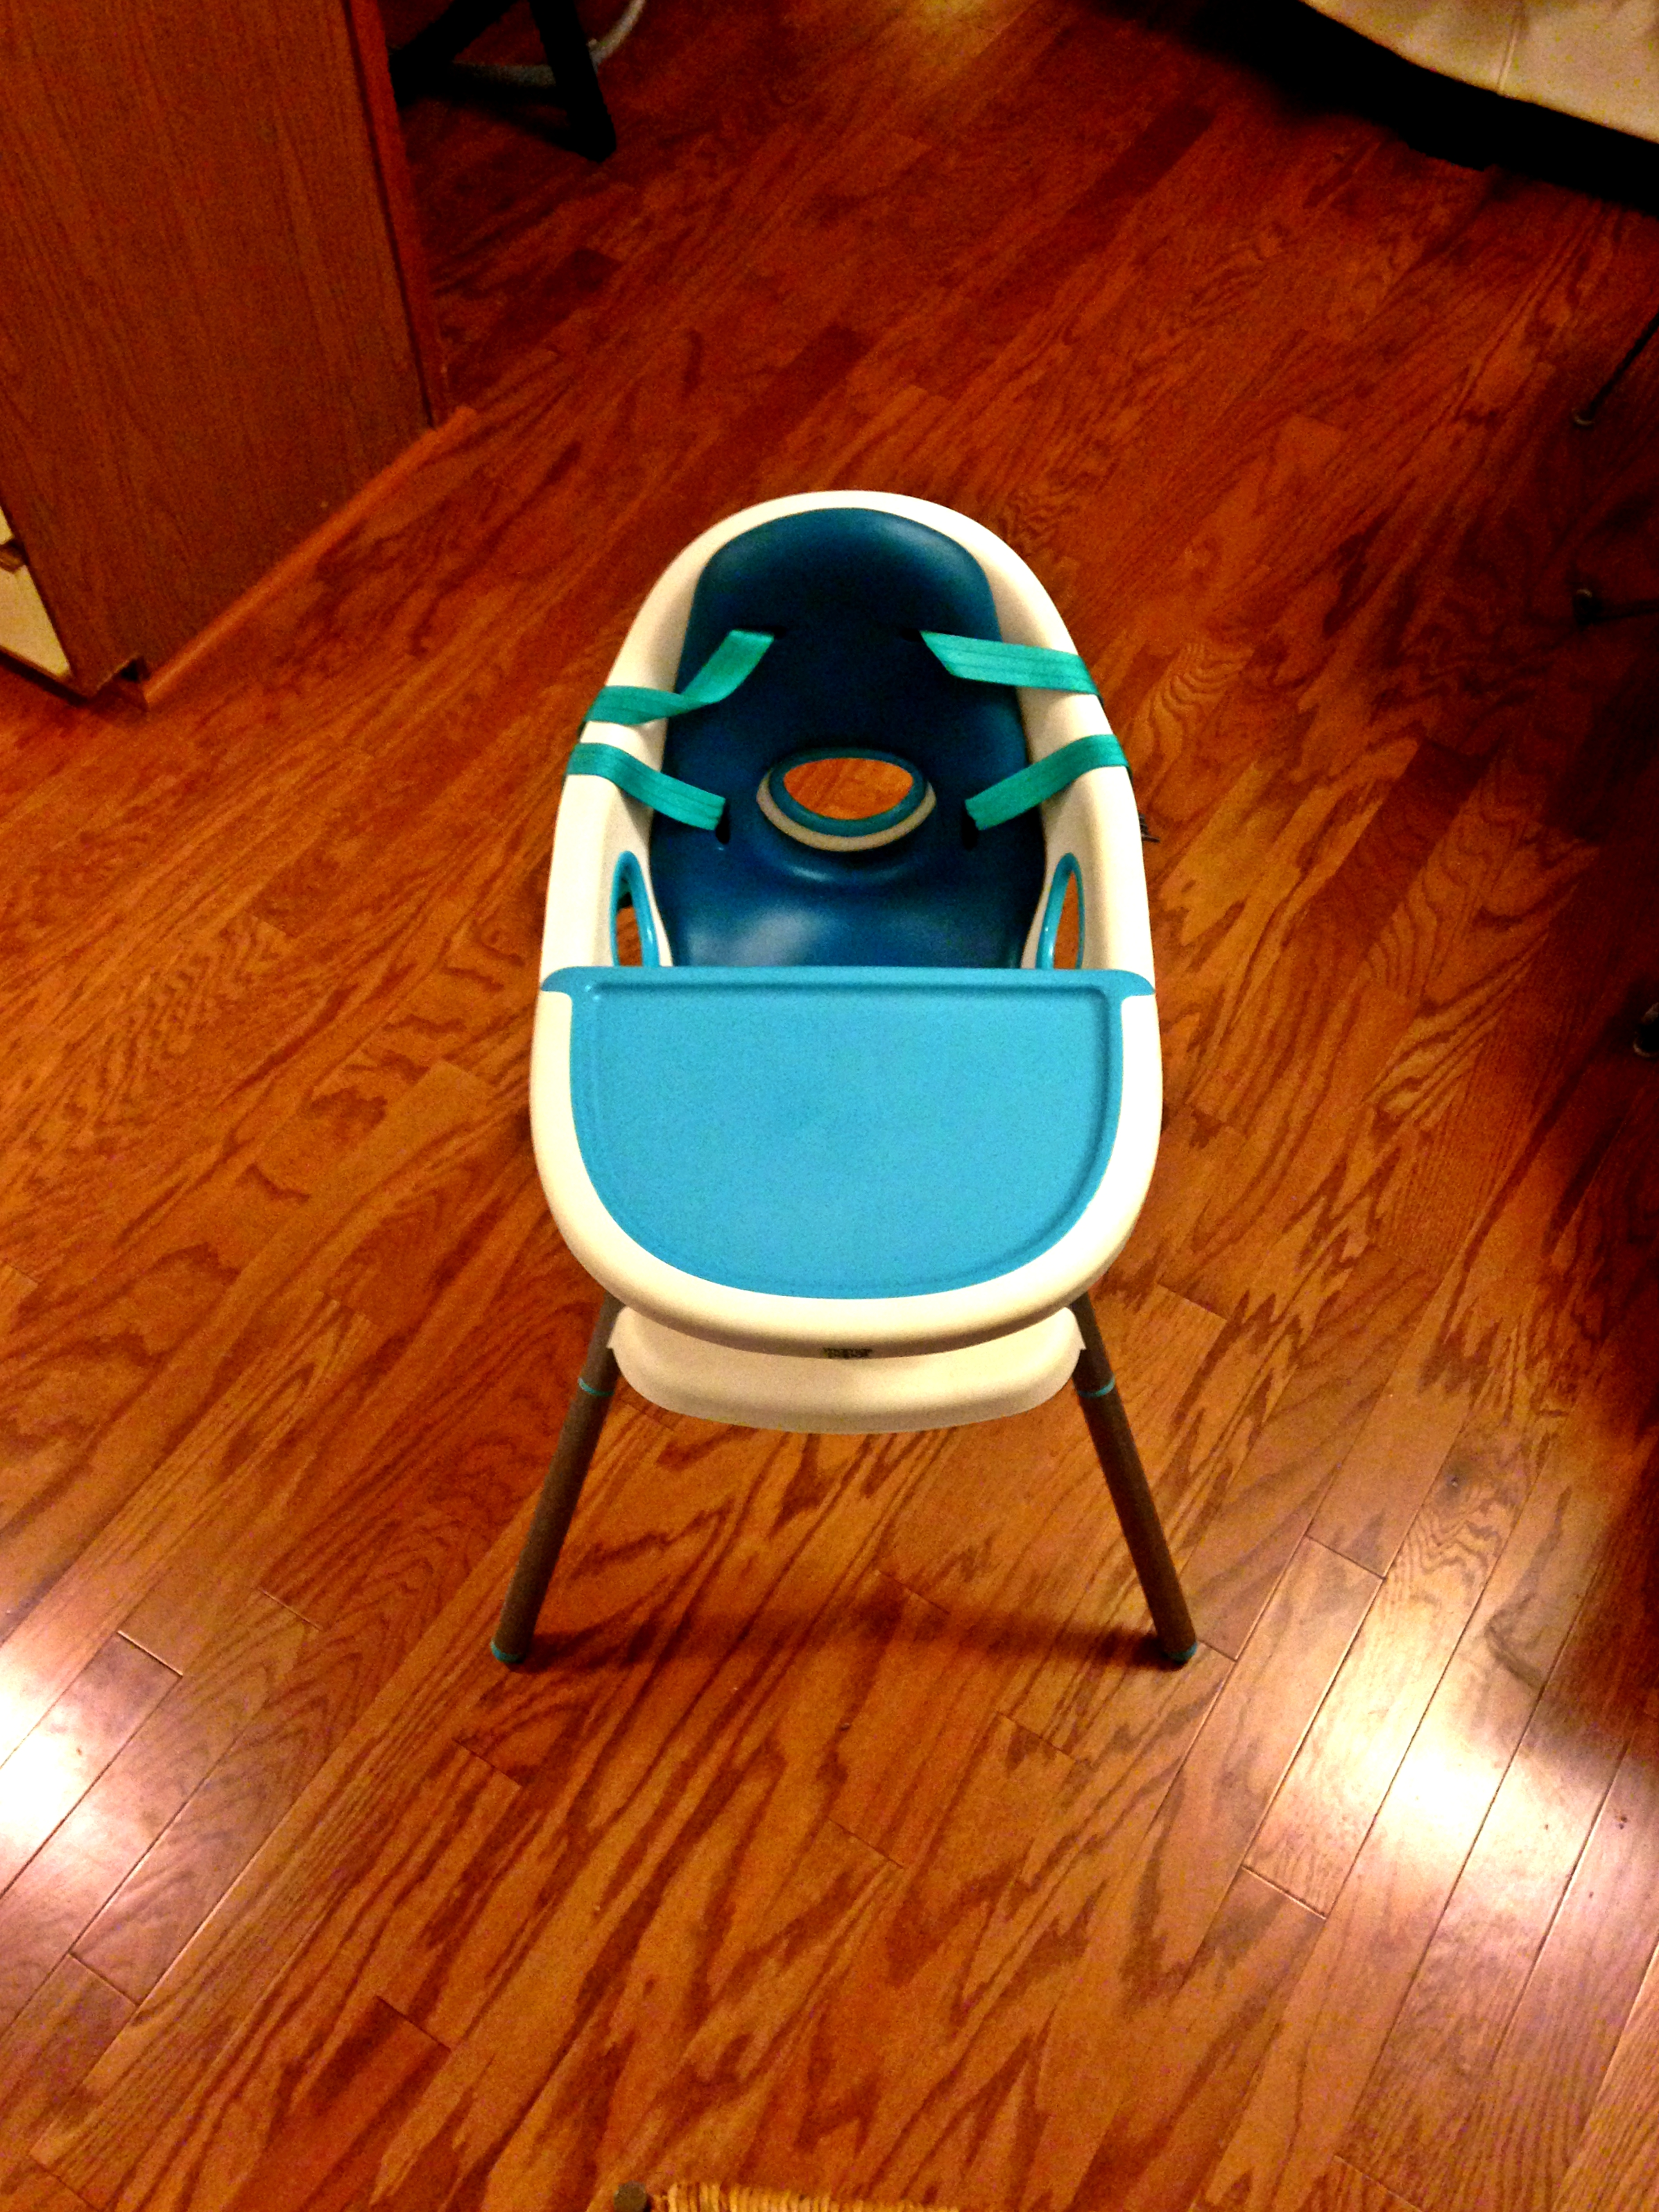 Stylish high chair